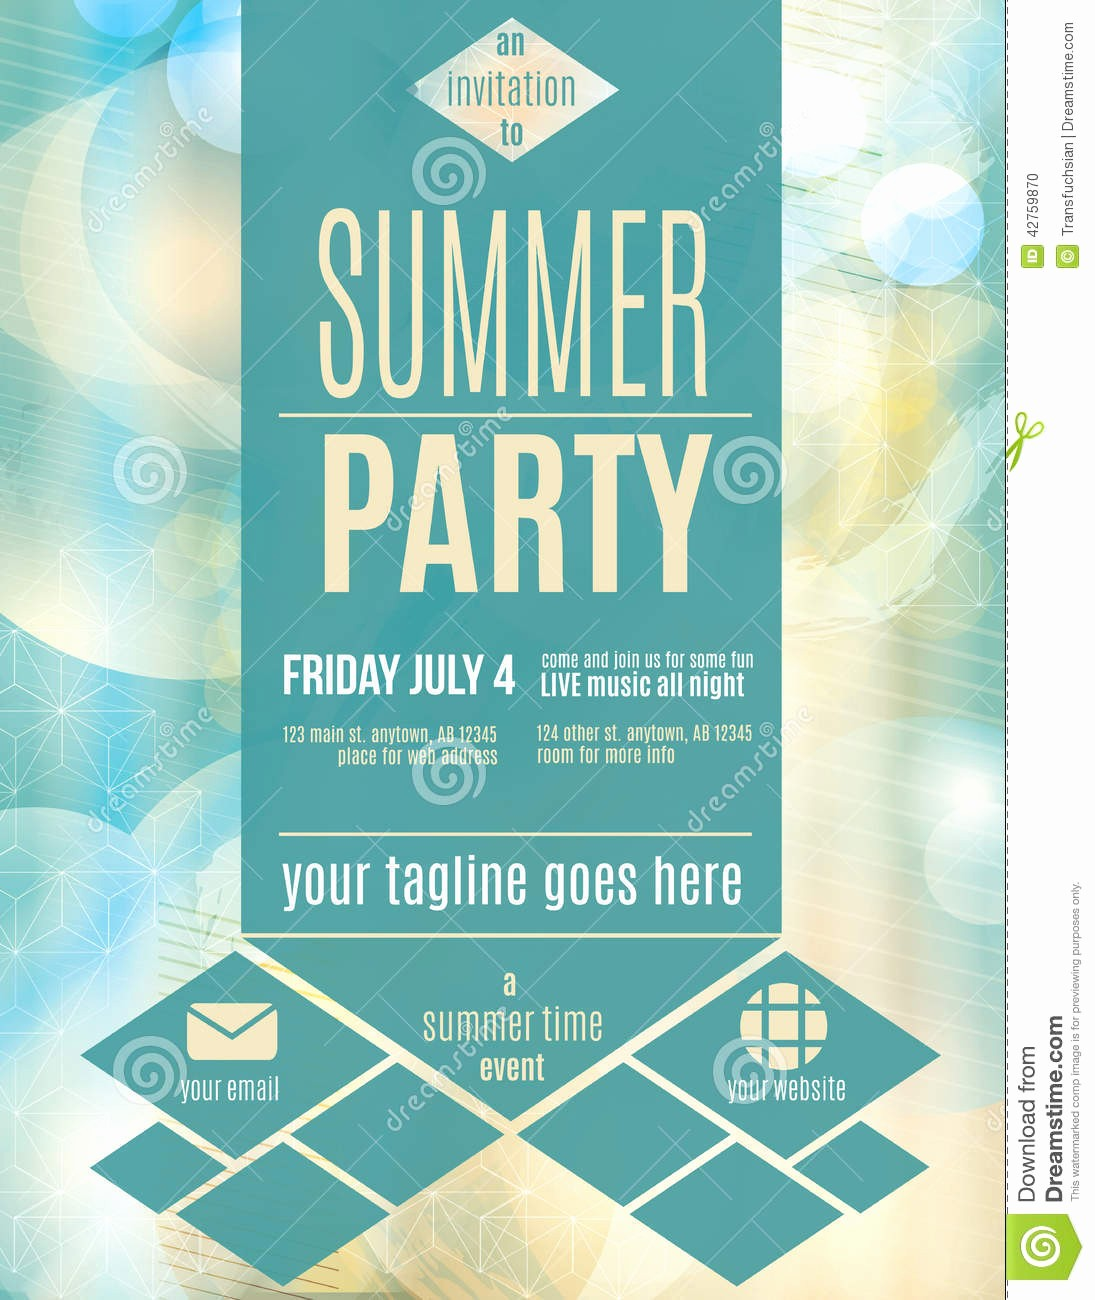 Party Flyer Templates Free Downloads Best Of Modern Style Summer Party Flyer Template Download From Ov